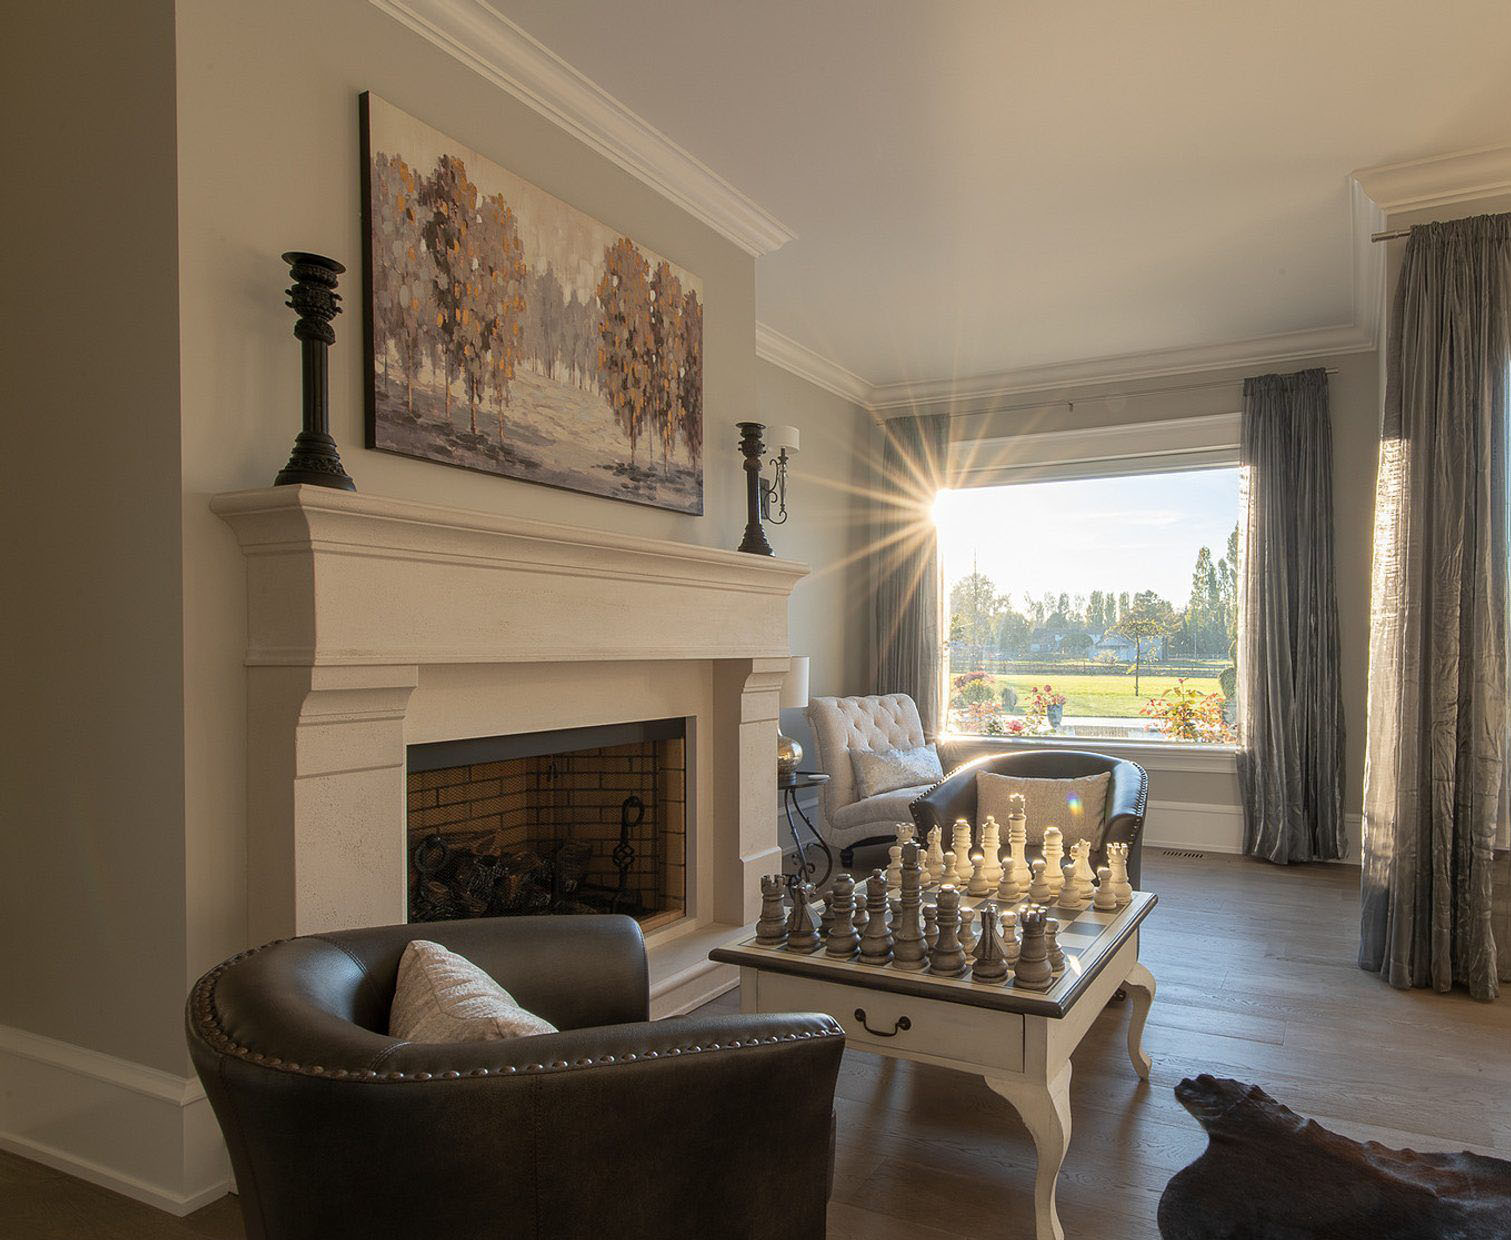 Cast cement wood burning fireplace surround in the bedroom. Warm cream colored paint with gray walls and white trim. fireplace design ideas.